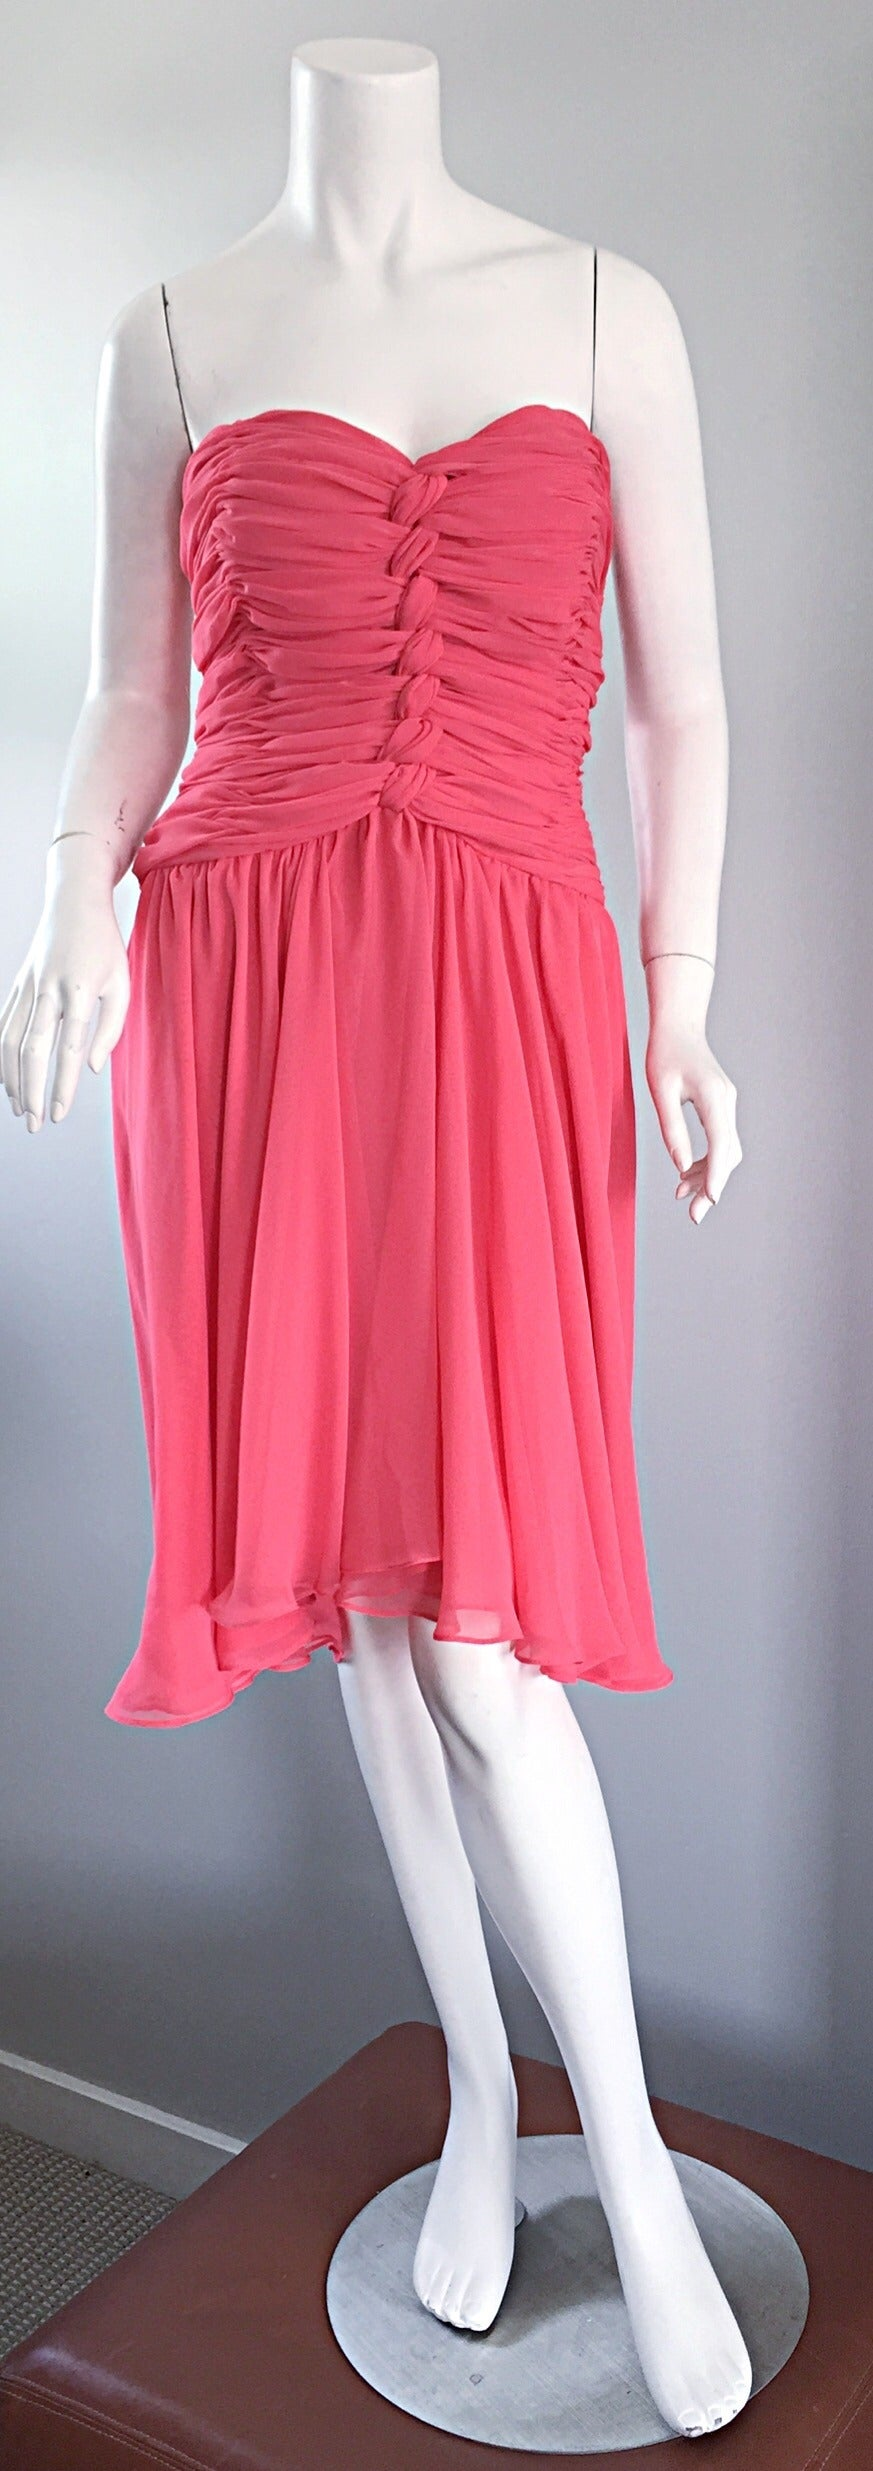 Victor Costa Coral Pink Strapless Flowy Knotted Vintage Cocktail Dress Size 8 10 9